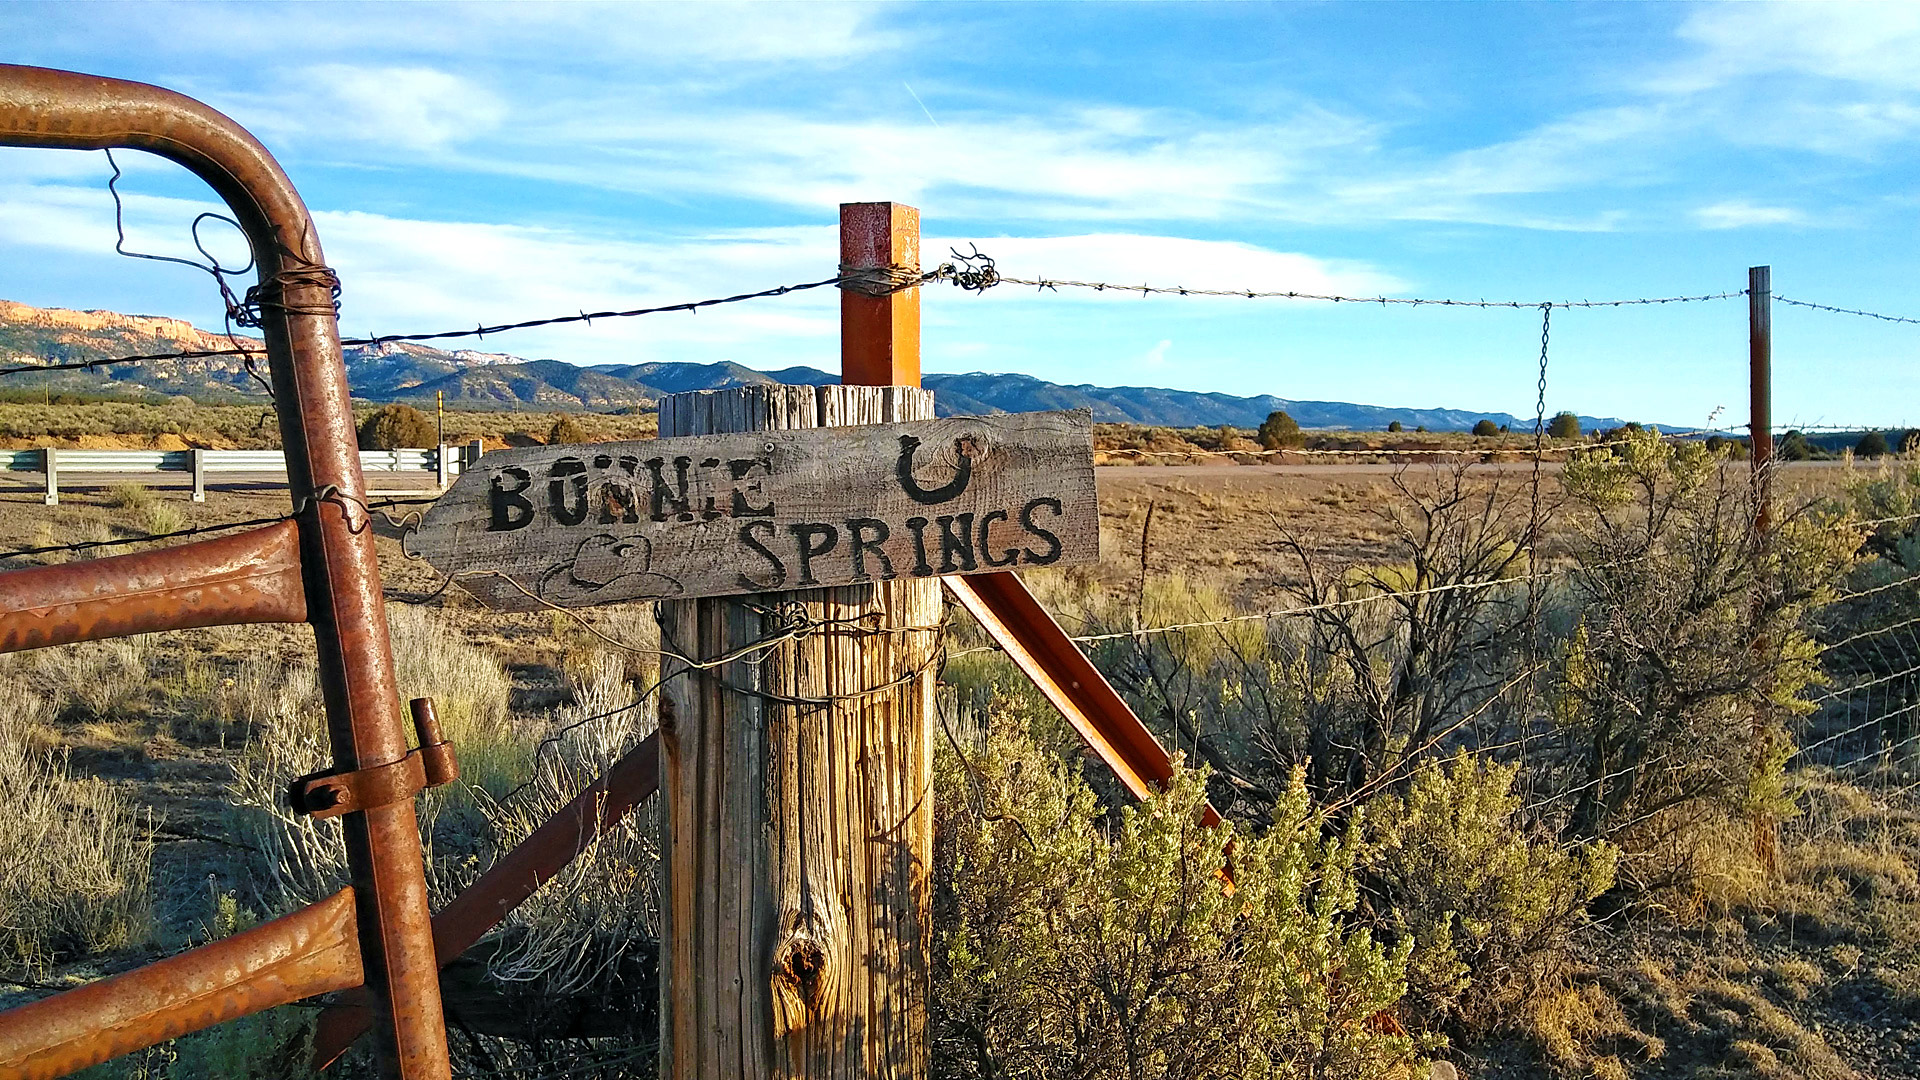 Bonnie Springs trail sign post to Sevier River tunnel.